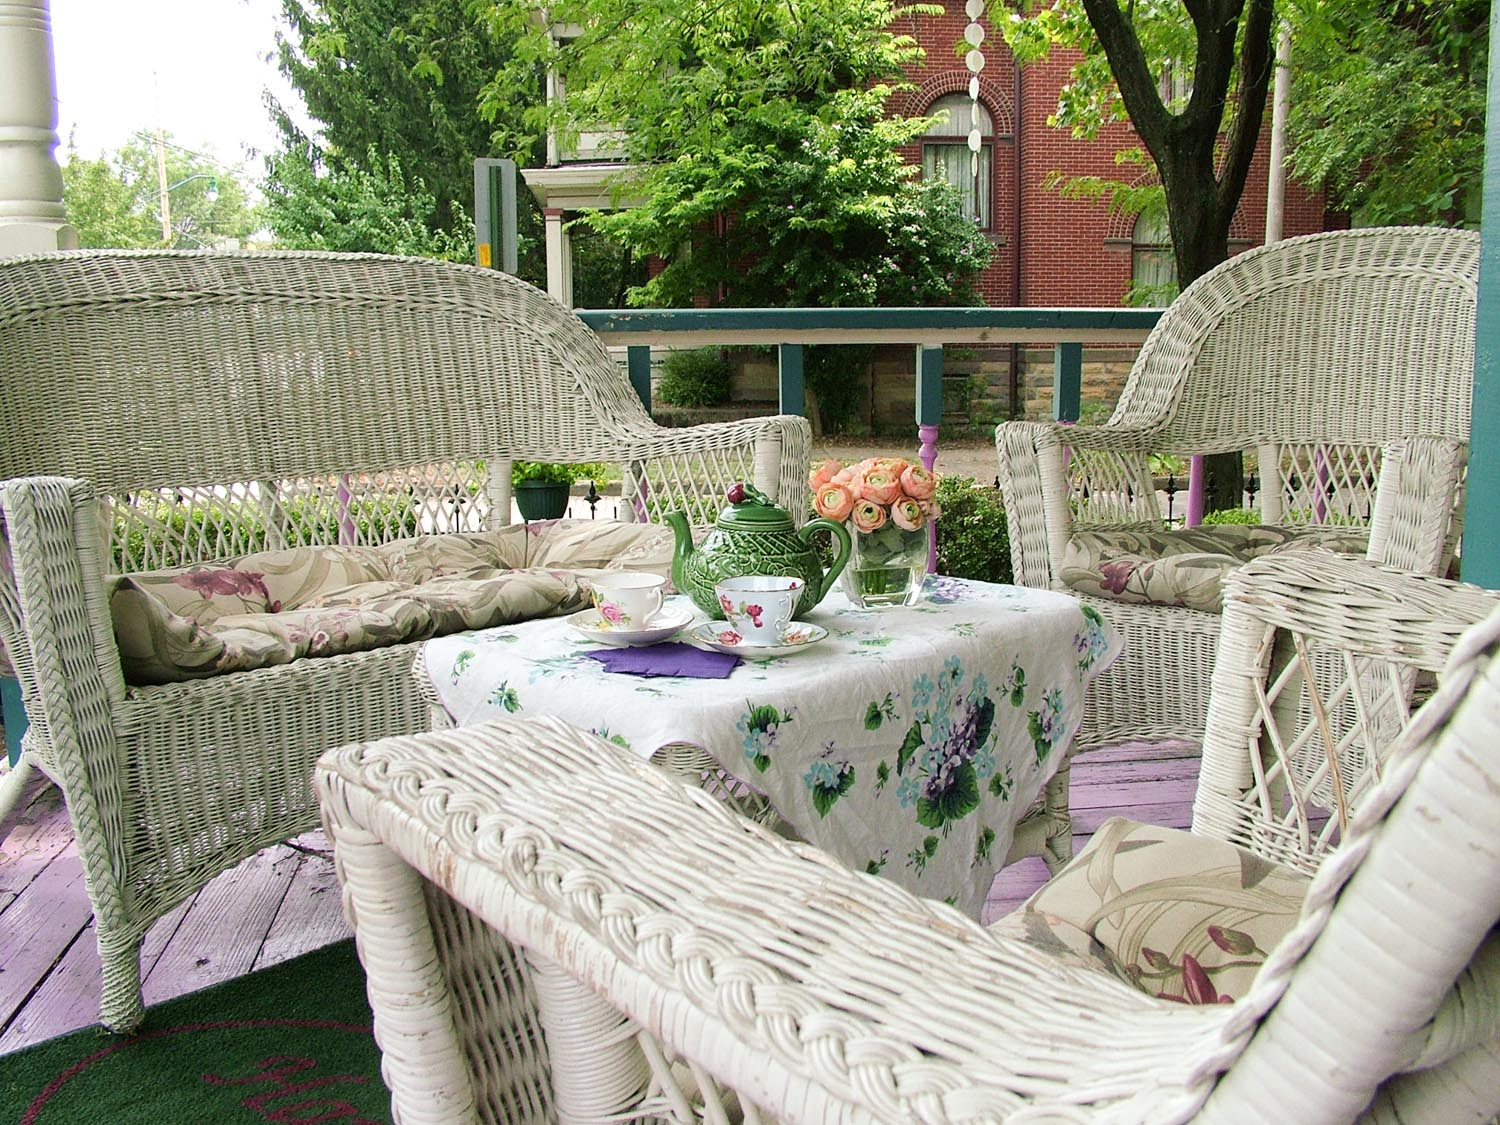 Harrison-House-Bed-and-Breakfast-Columbus-Ohio-Home-6